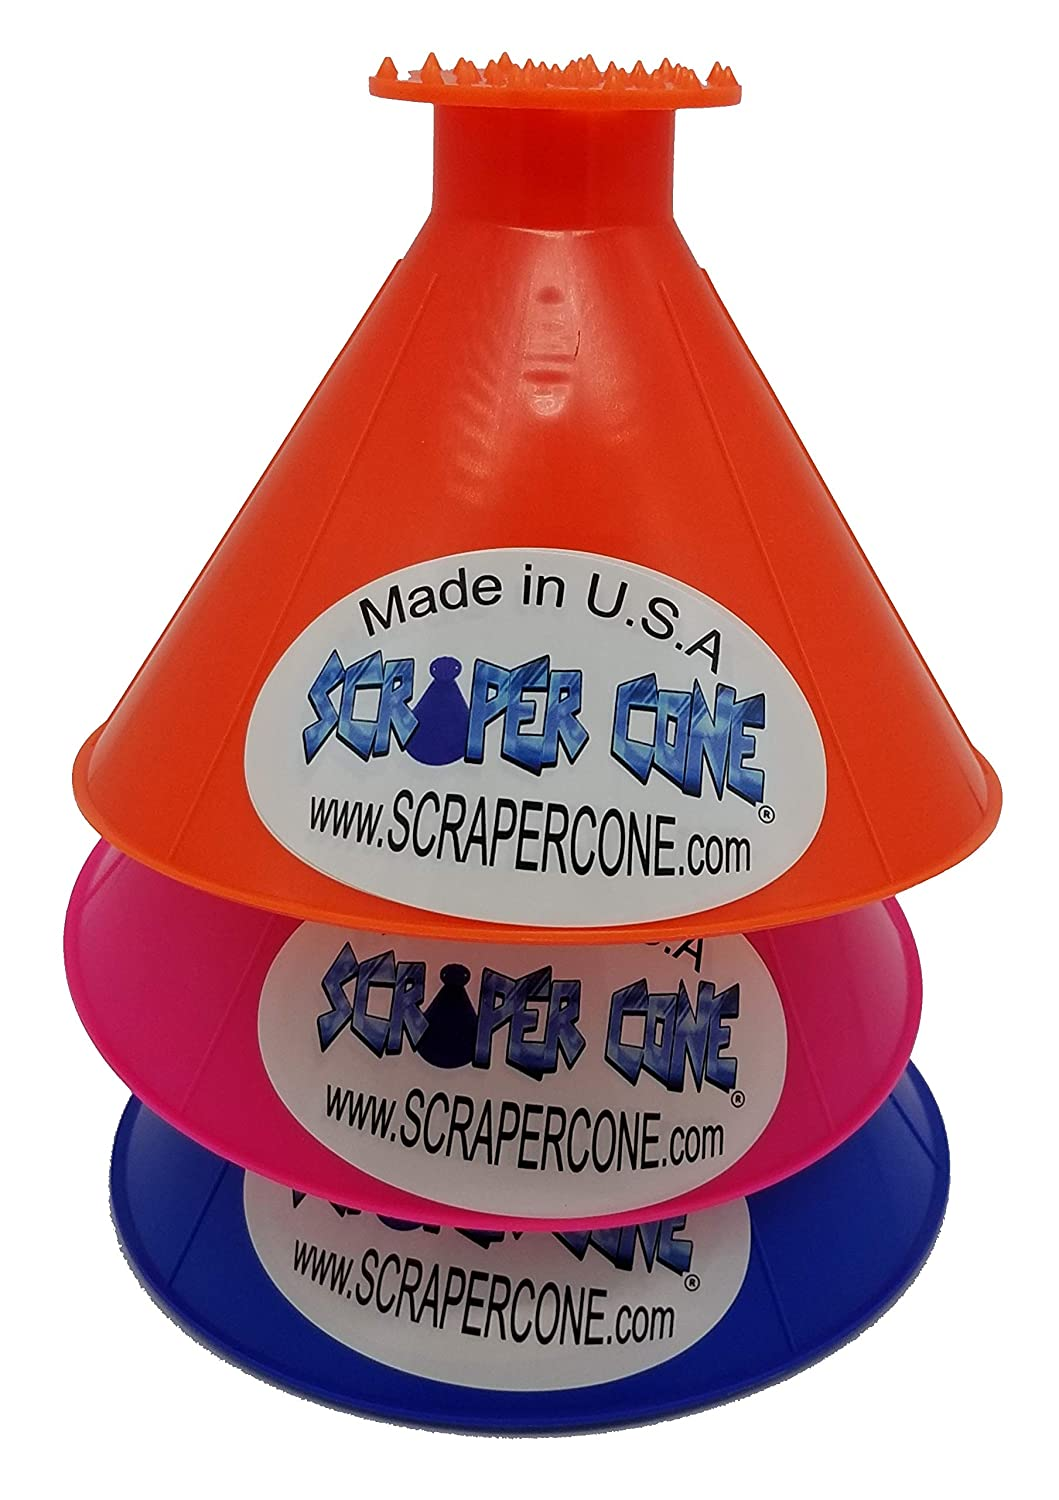 Snow Removal Made in The USA and Sold from The USA Frost Removal Funnel Shaped SCRAPER CONE 3 Pack of The Original Ice Scraper